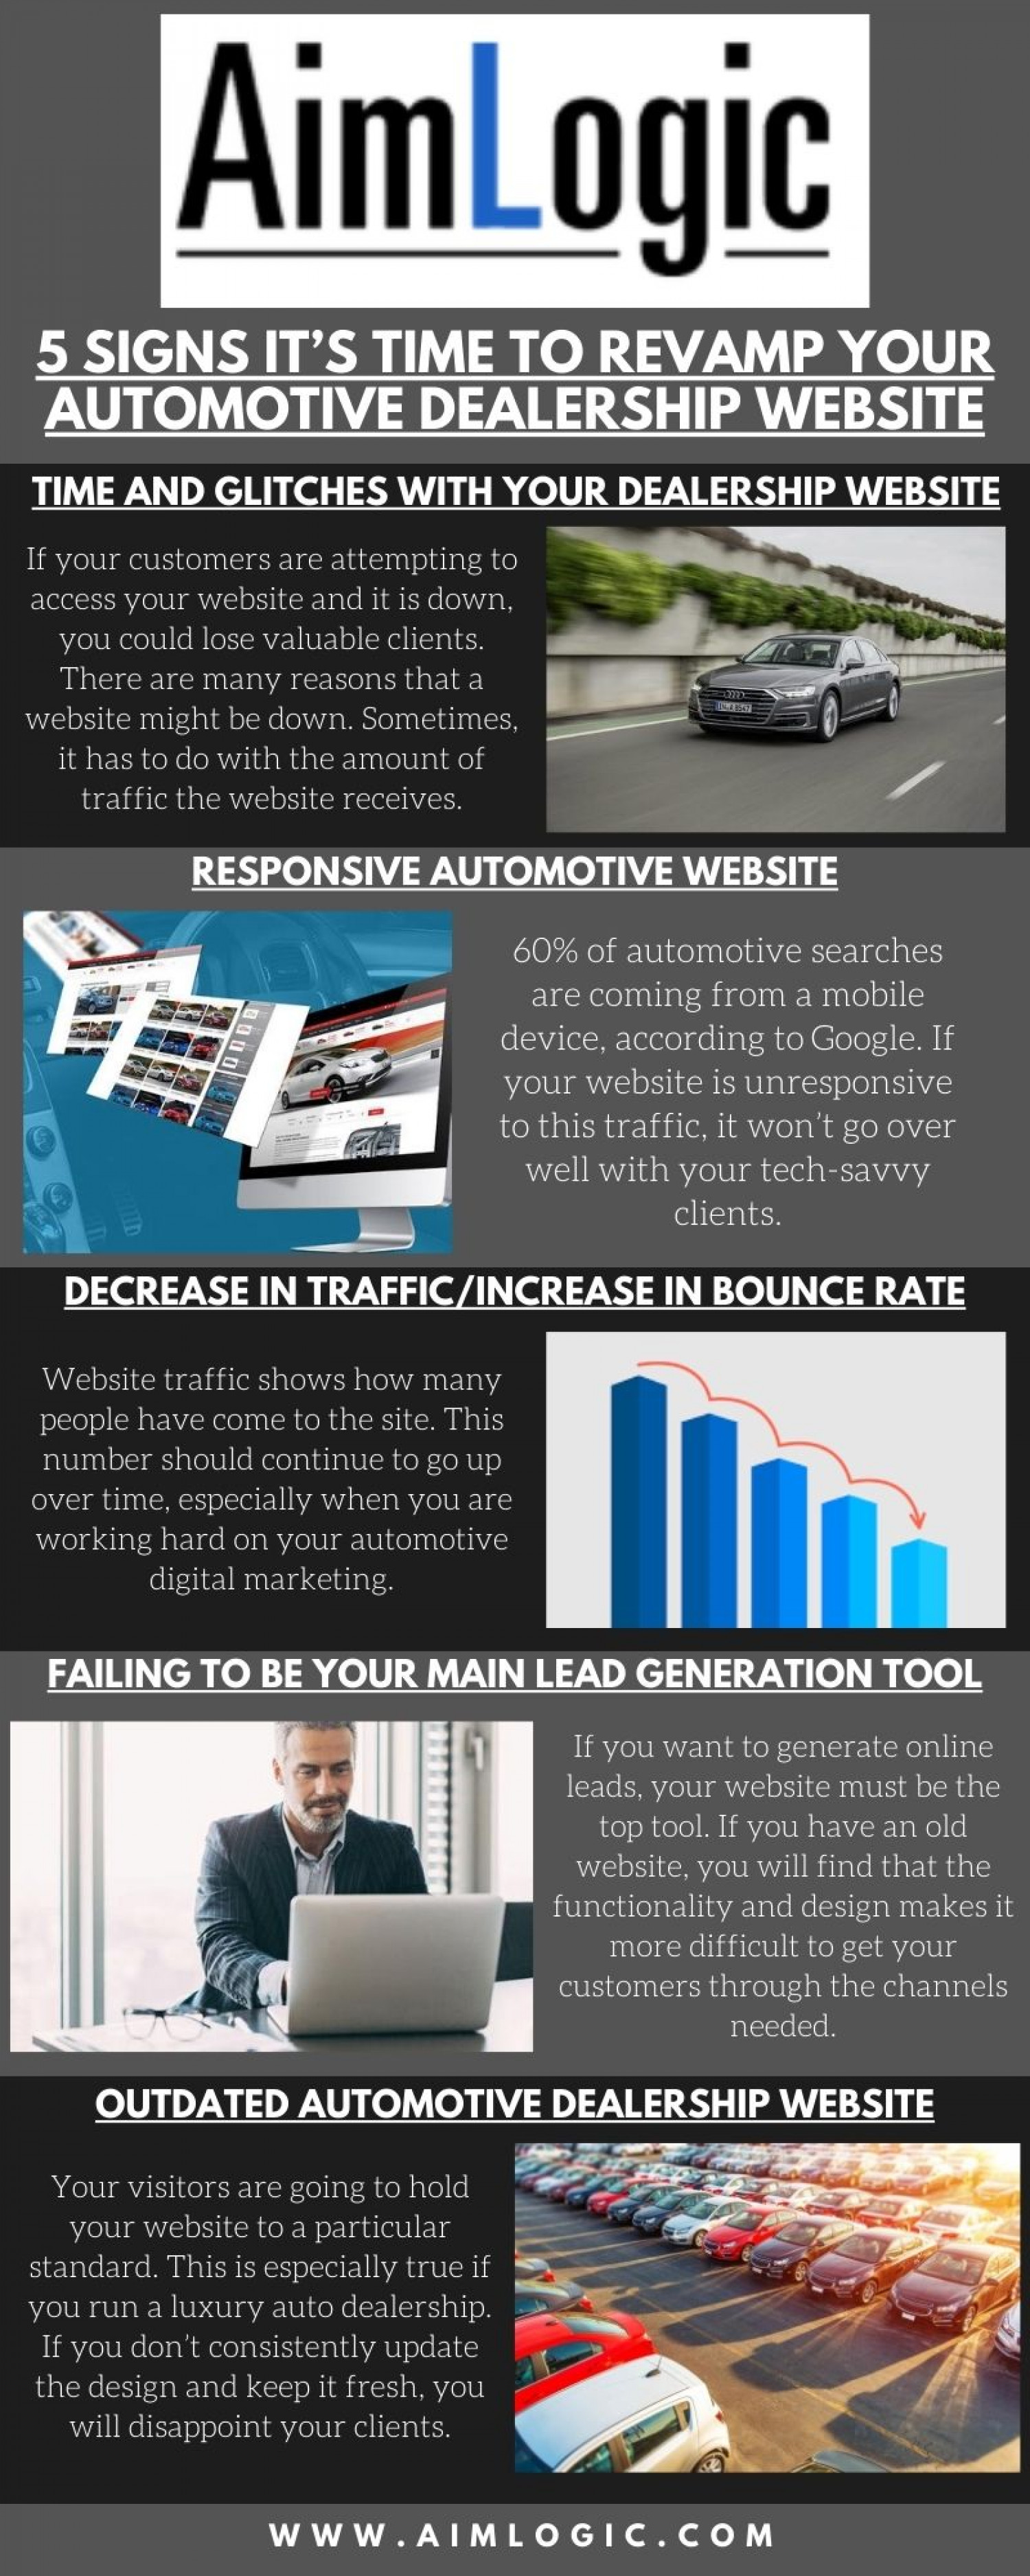 5 SIGNS IT'S TIME TO REVAMP YOUR AUTOMOTIVE DEALERSHIP WEBSITE Infographic